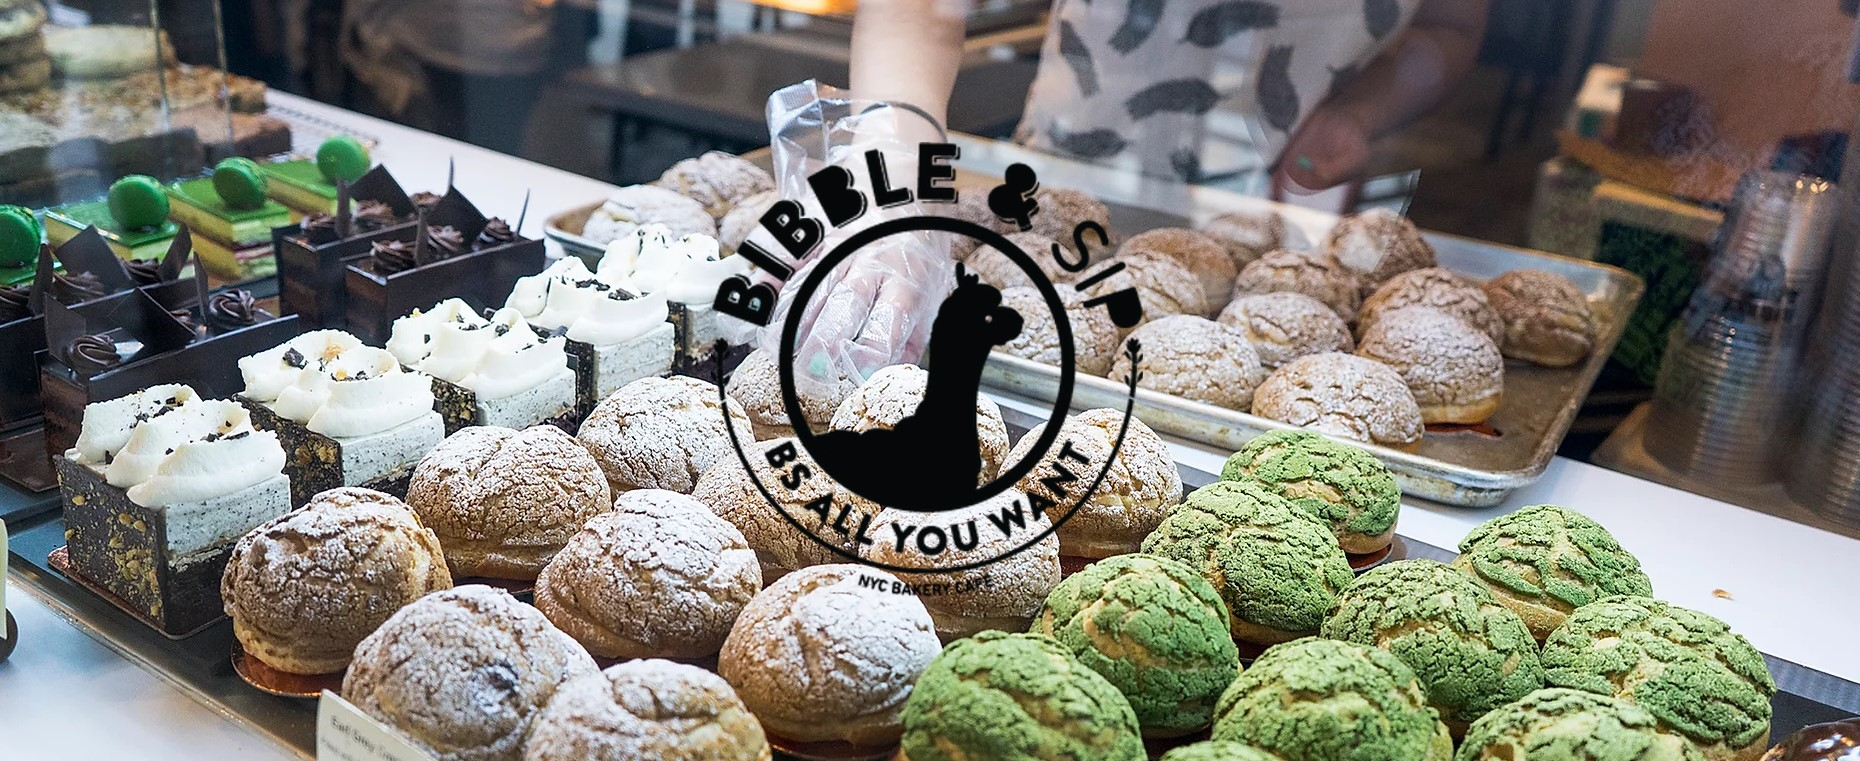 bibble & sip bakery in new york